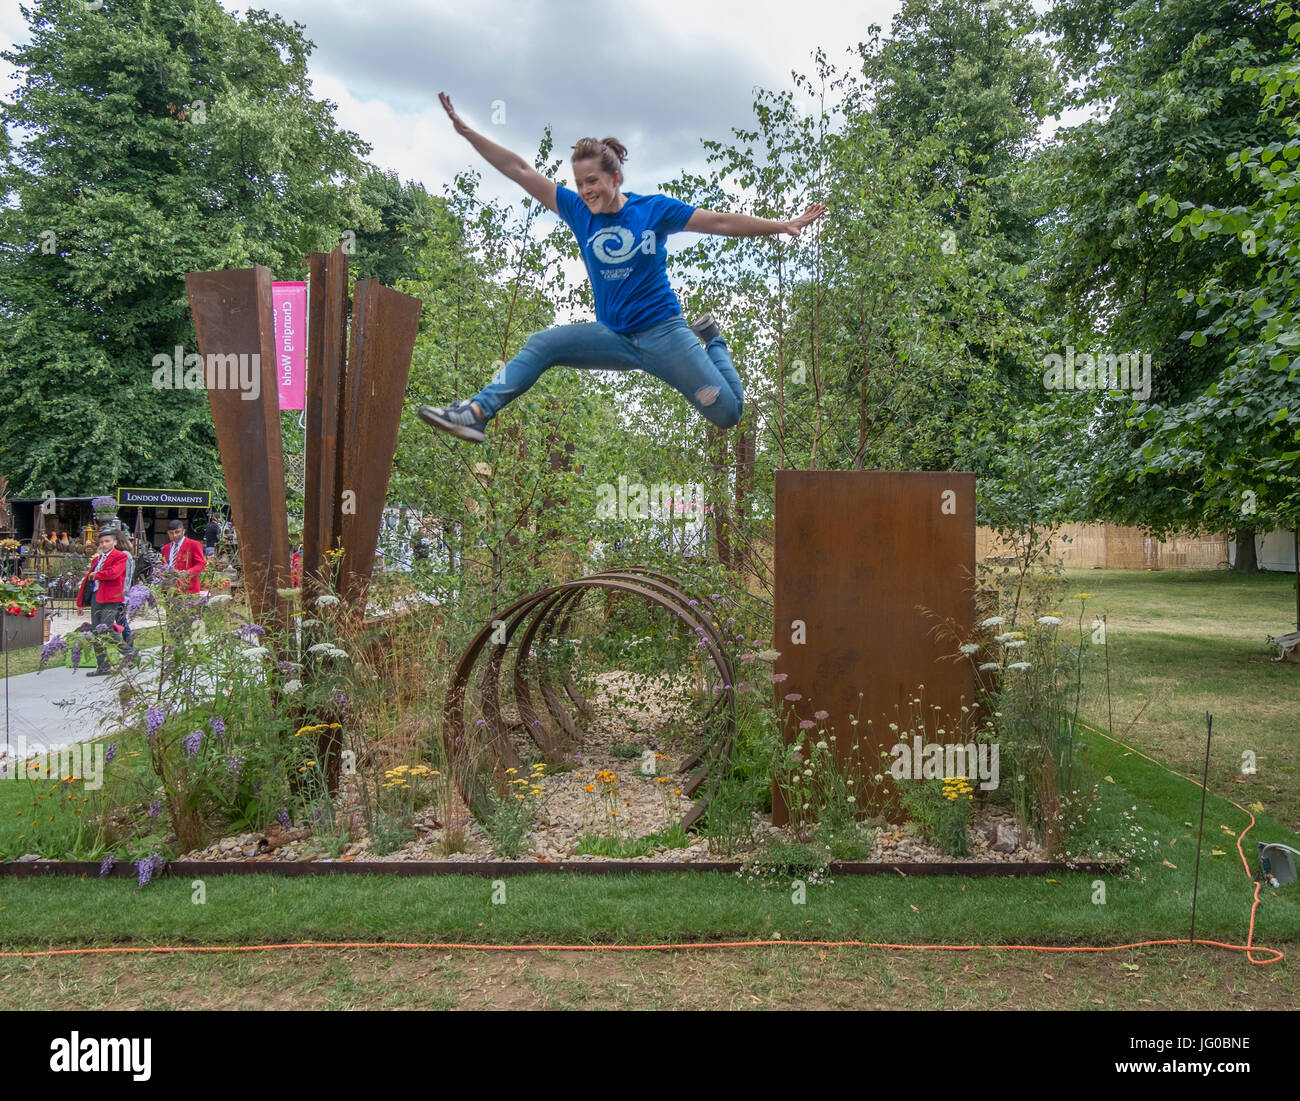 Hampton Court Palace, East Molesey, UK. 3rd July, 2017. Thuli Lamb, an urban free runner athlete from Parkour Generations, - Stock Image